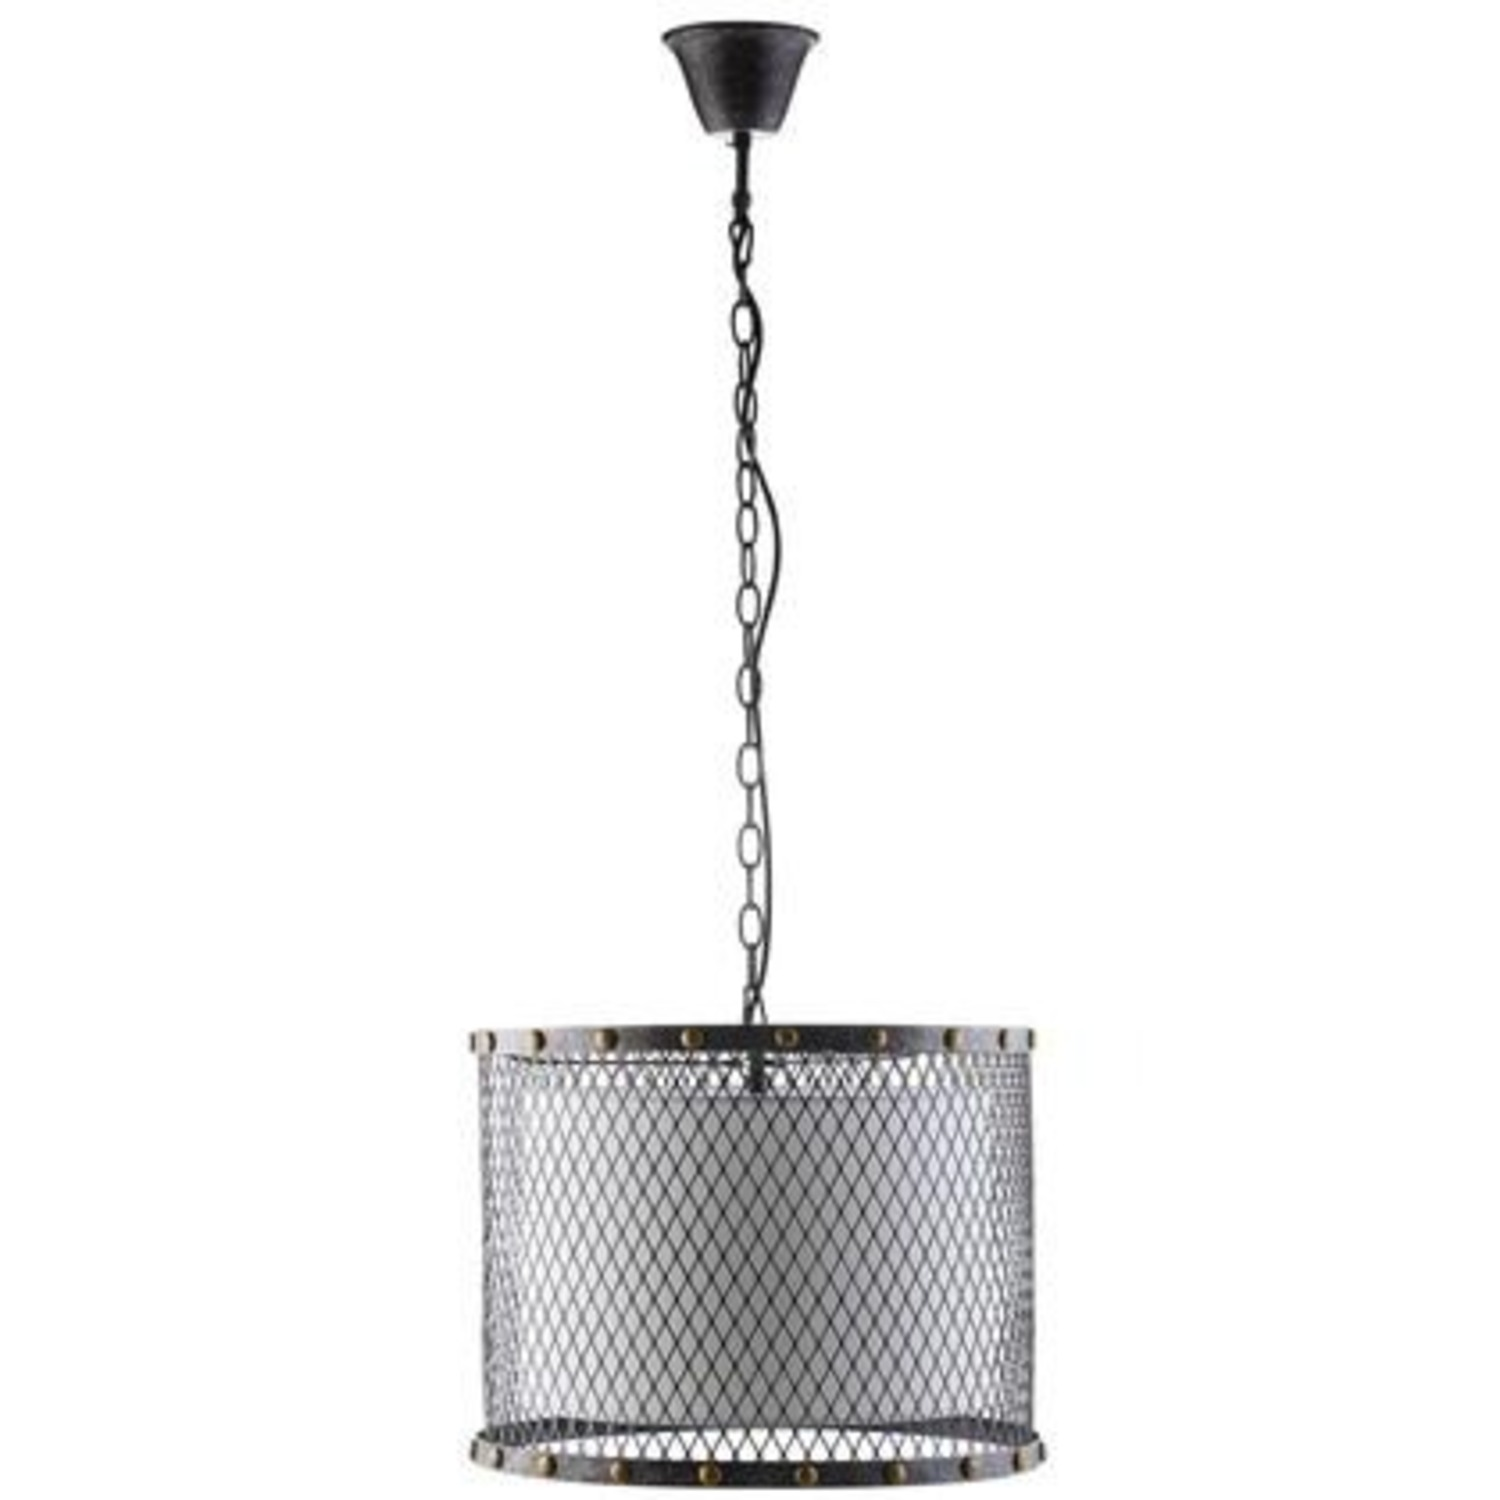 Modern Chandelier In Iron-Tinted Steel Finish - image-0